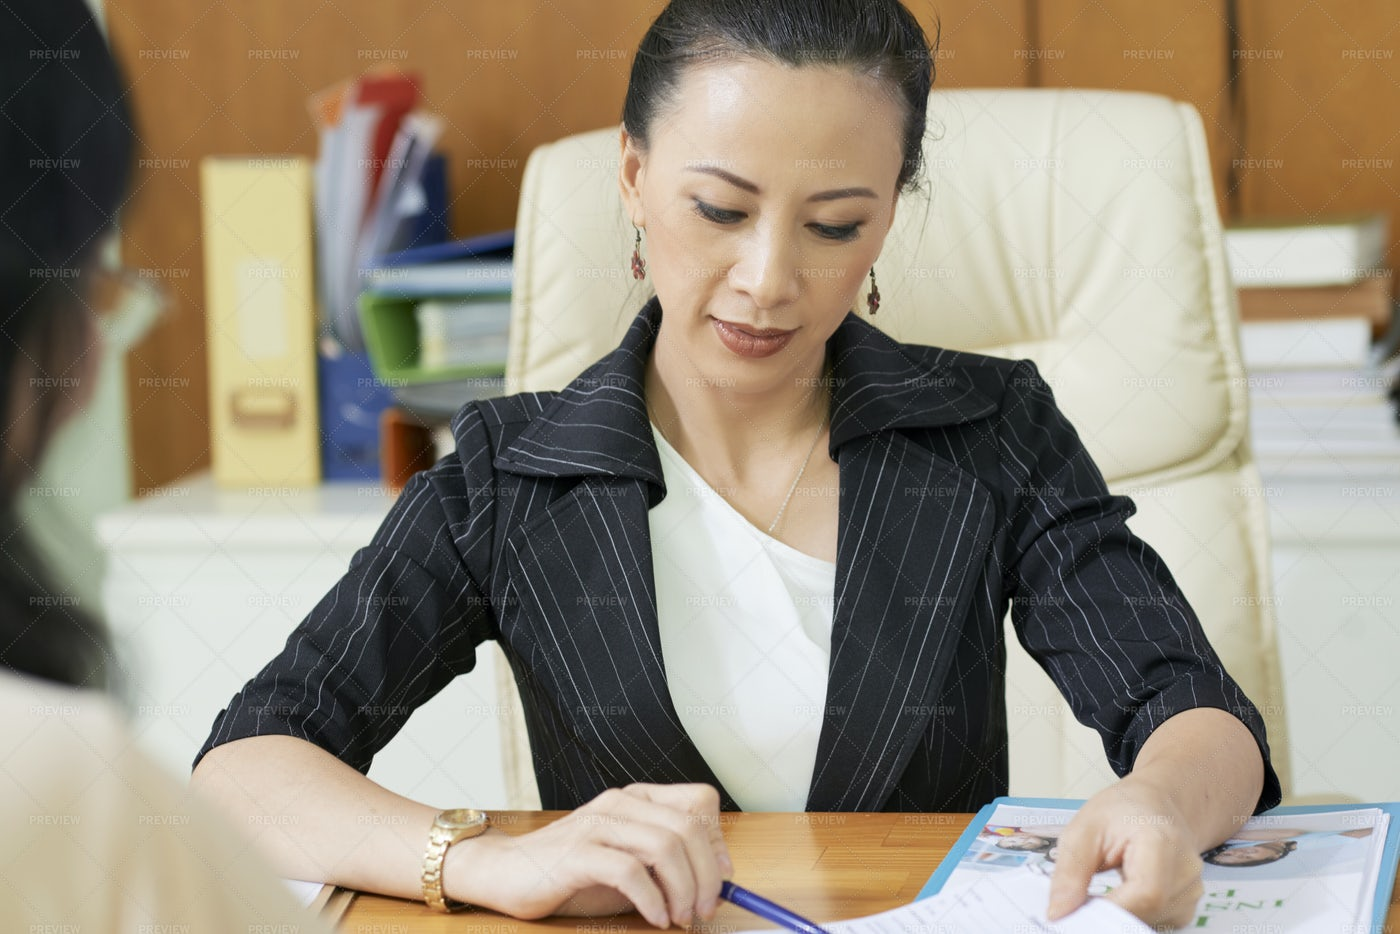 Businesswoman Working With Client: Stock Photos